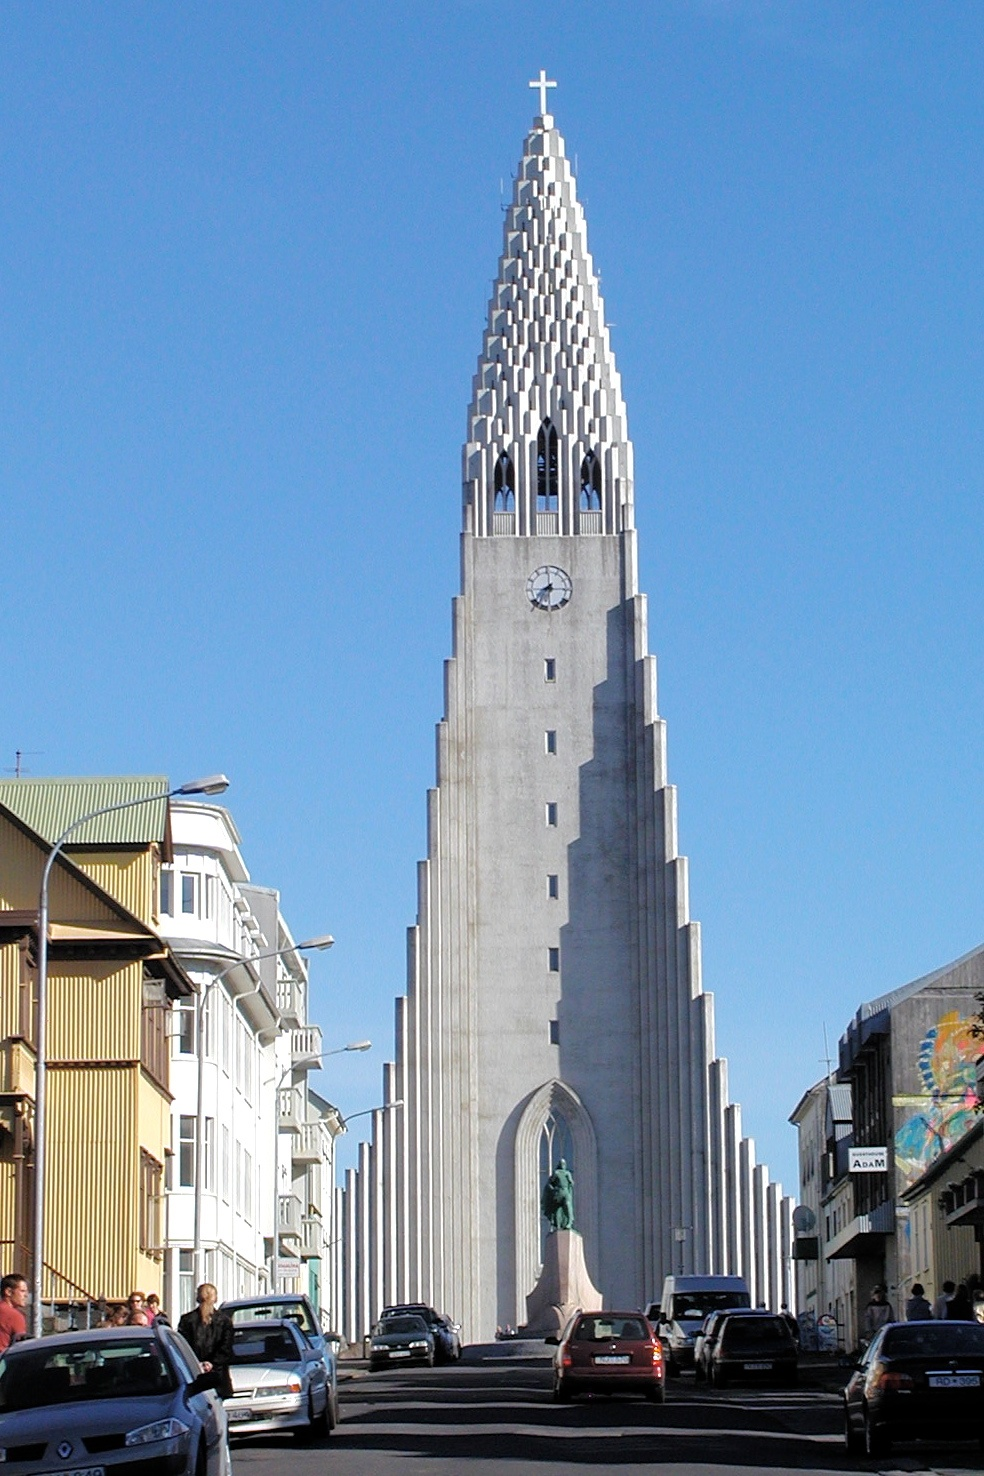 iceland cathedral author lucke charlie street vi